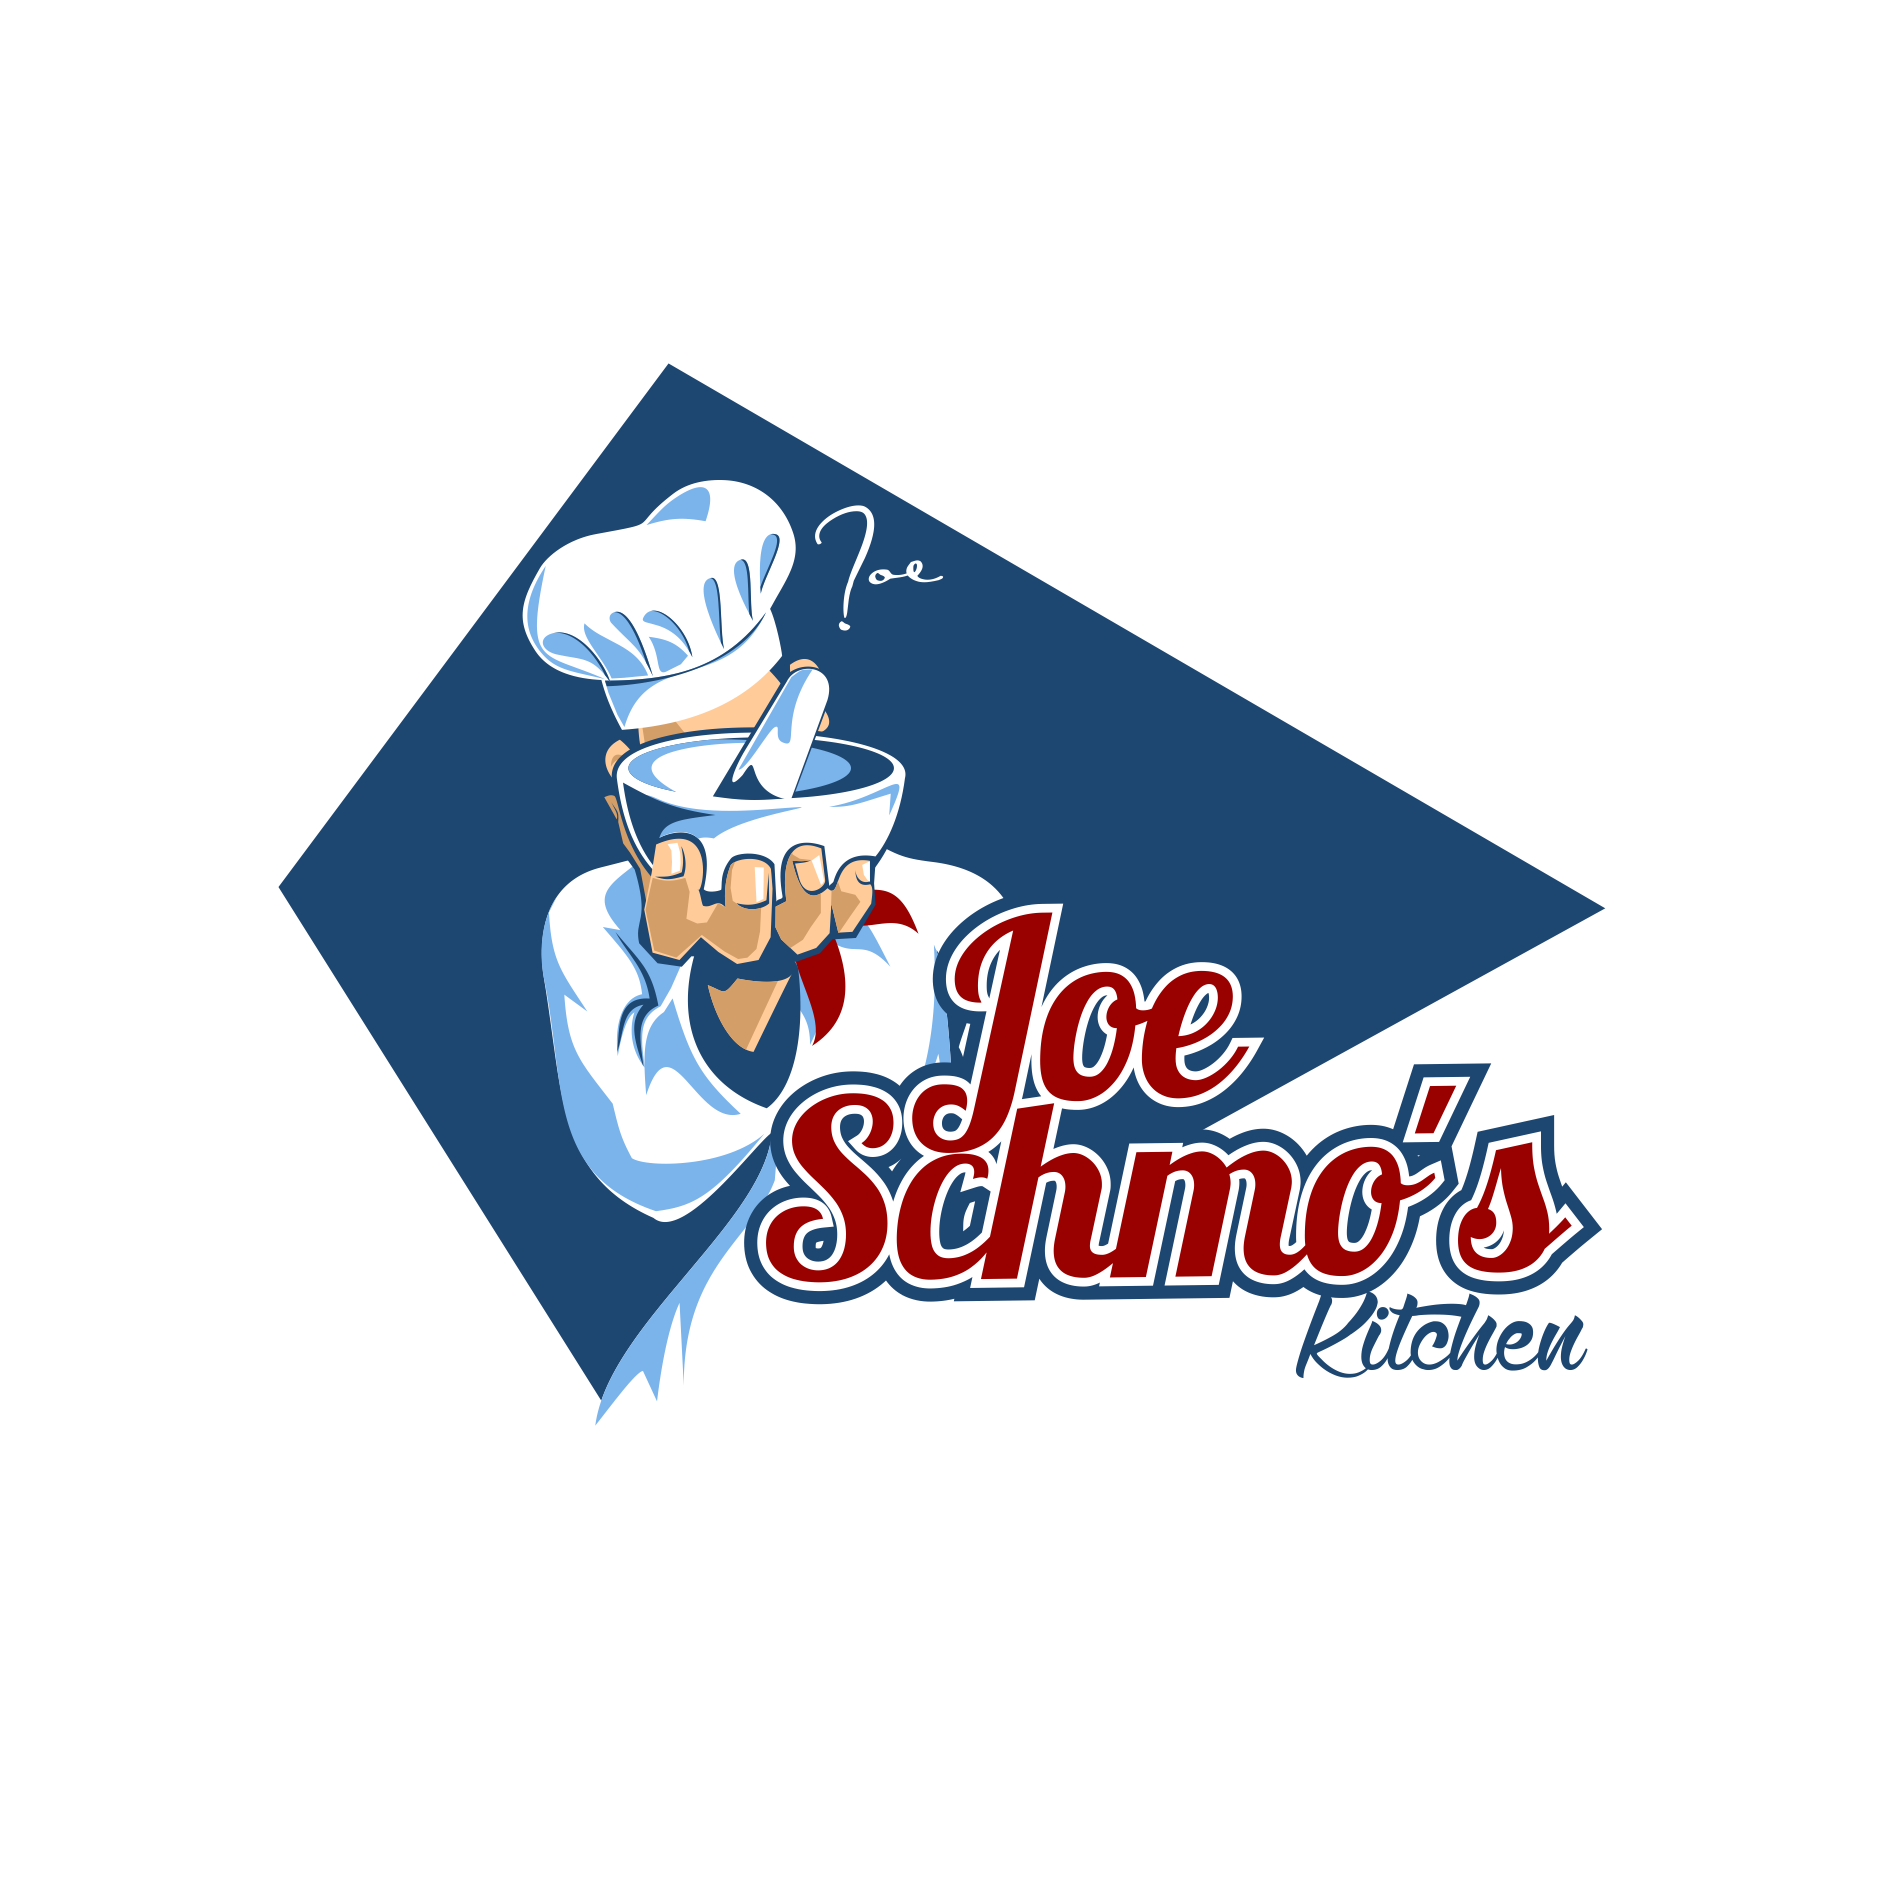 Joe Schmo's Kitchen